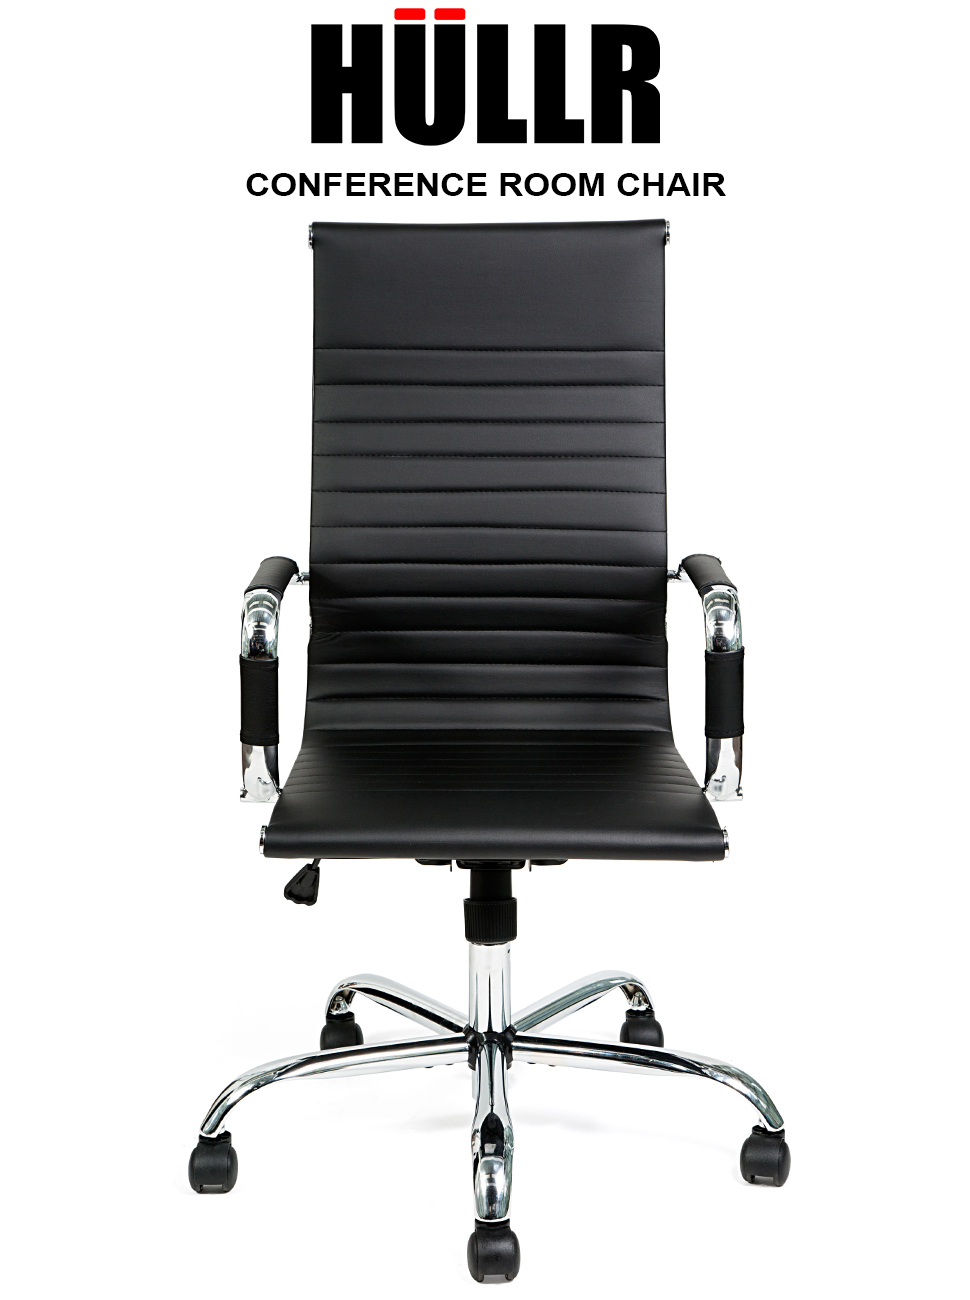 HULLR Executive High Back Modern Office Conference Task Chair Ergonomic  Contemporary Design Eames Style, Chrome Armrest U0026 Base With Swivel  Functionality ...